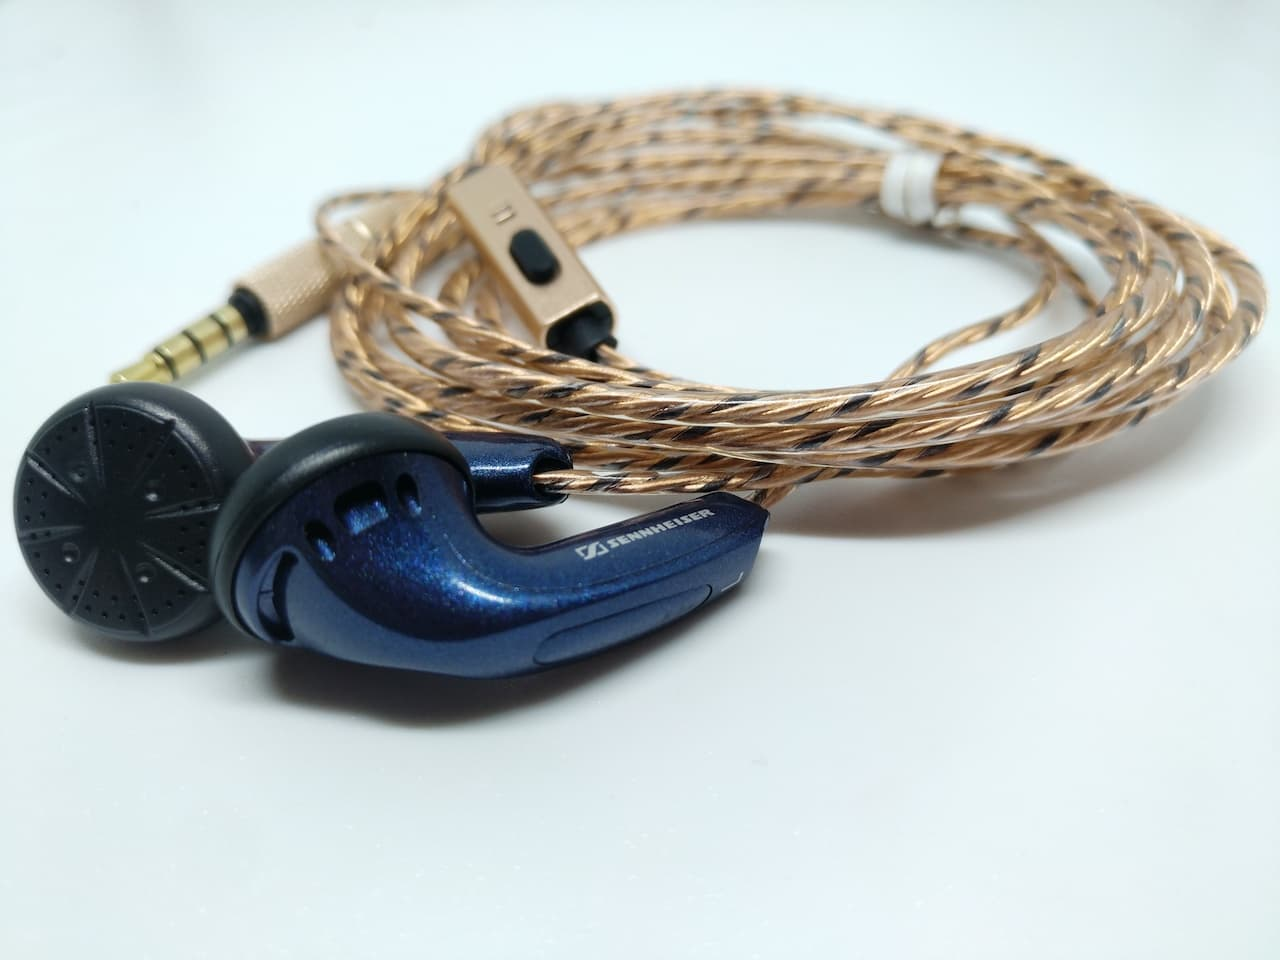 DIY Earbud Sennheiser MX500 With Mic Version 2.0 High Quality Earphone - Biru